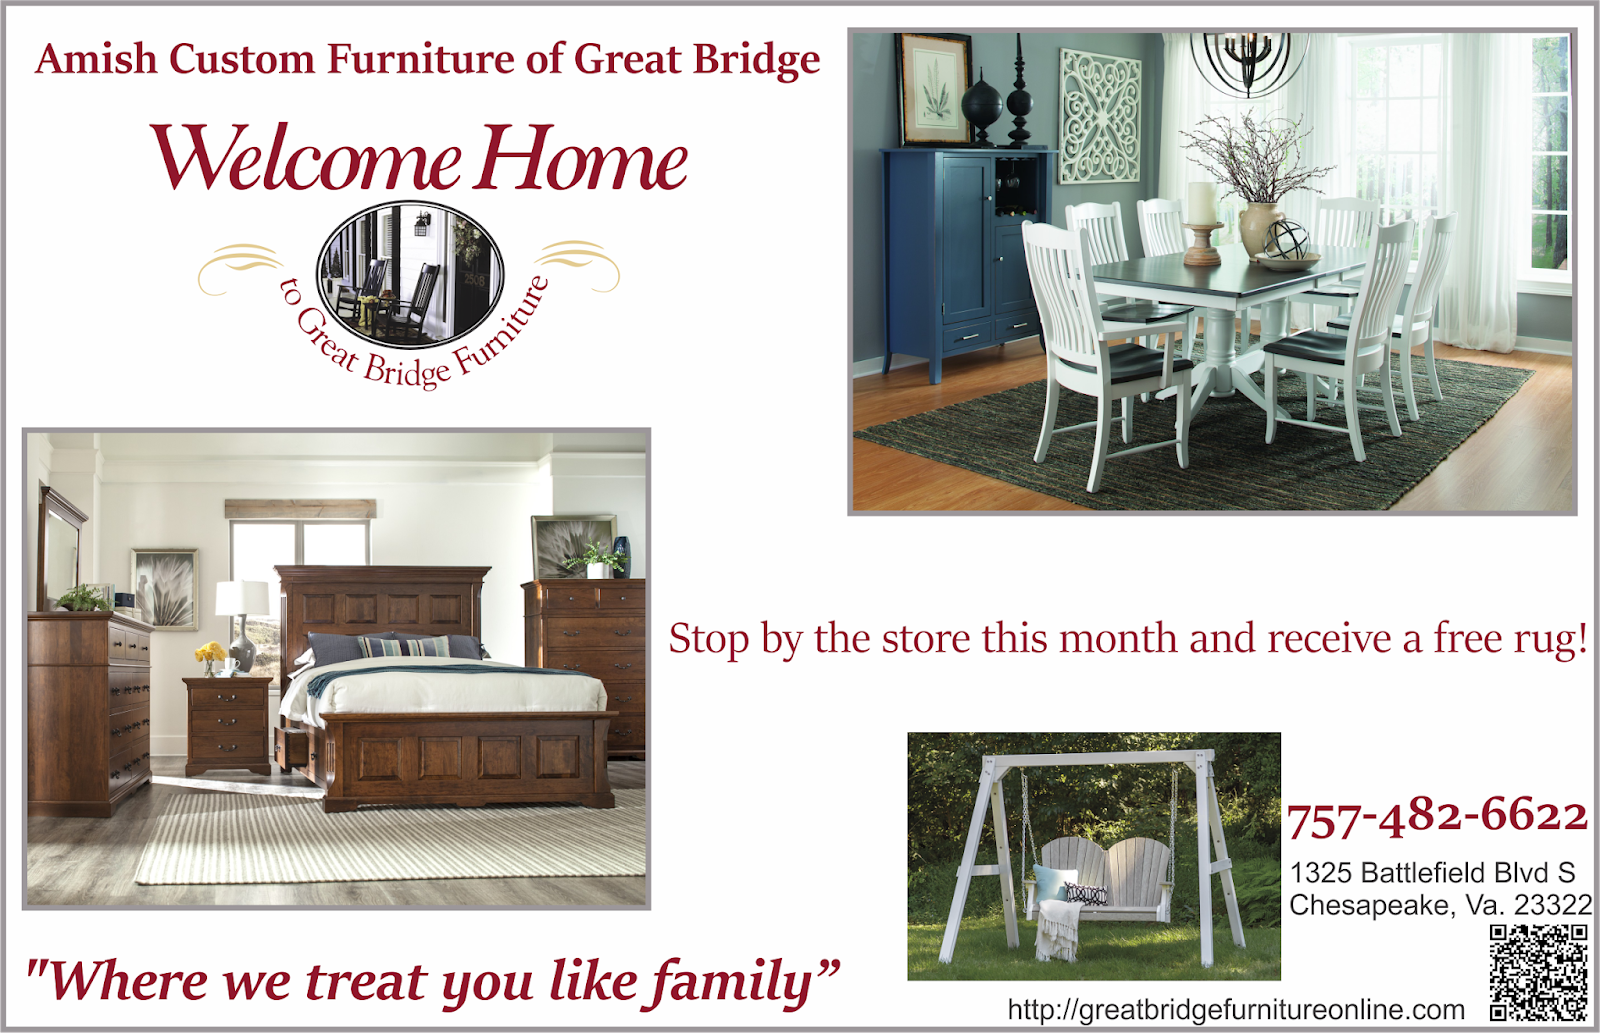 Amish Made Furniture Of Great Bridge Come By And Get Your